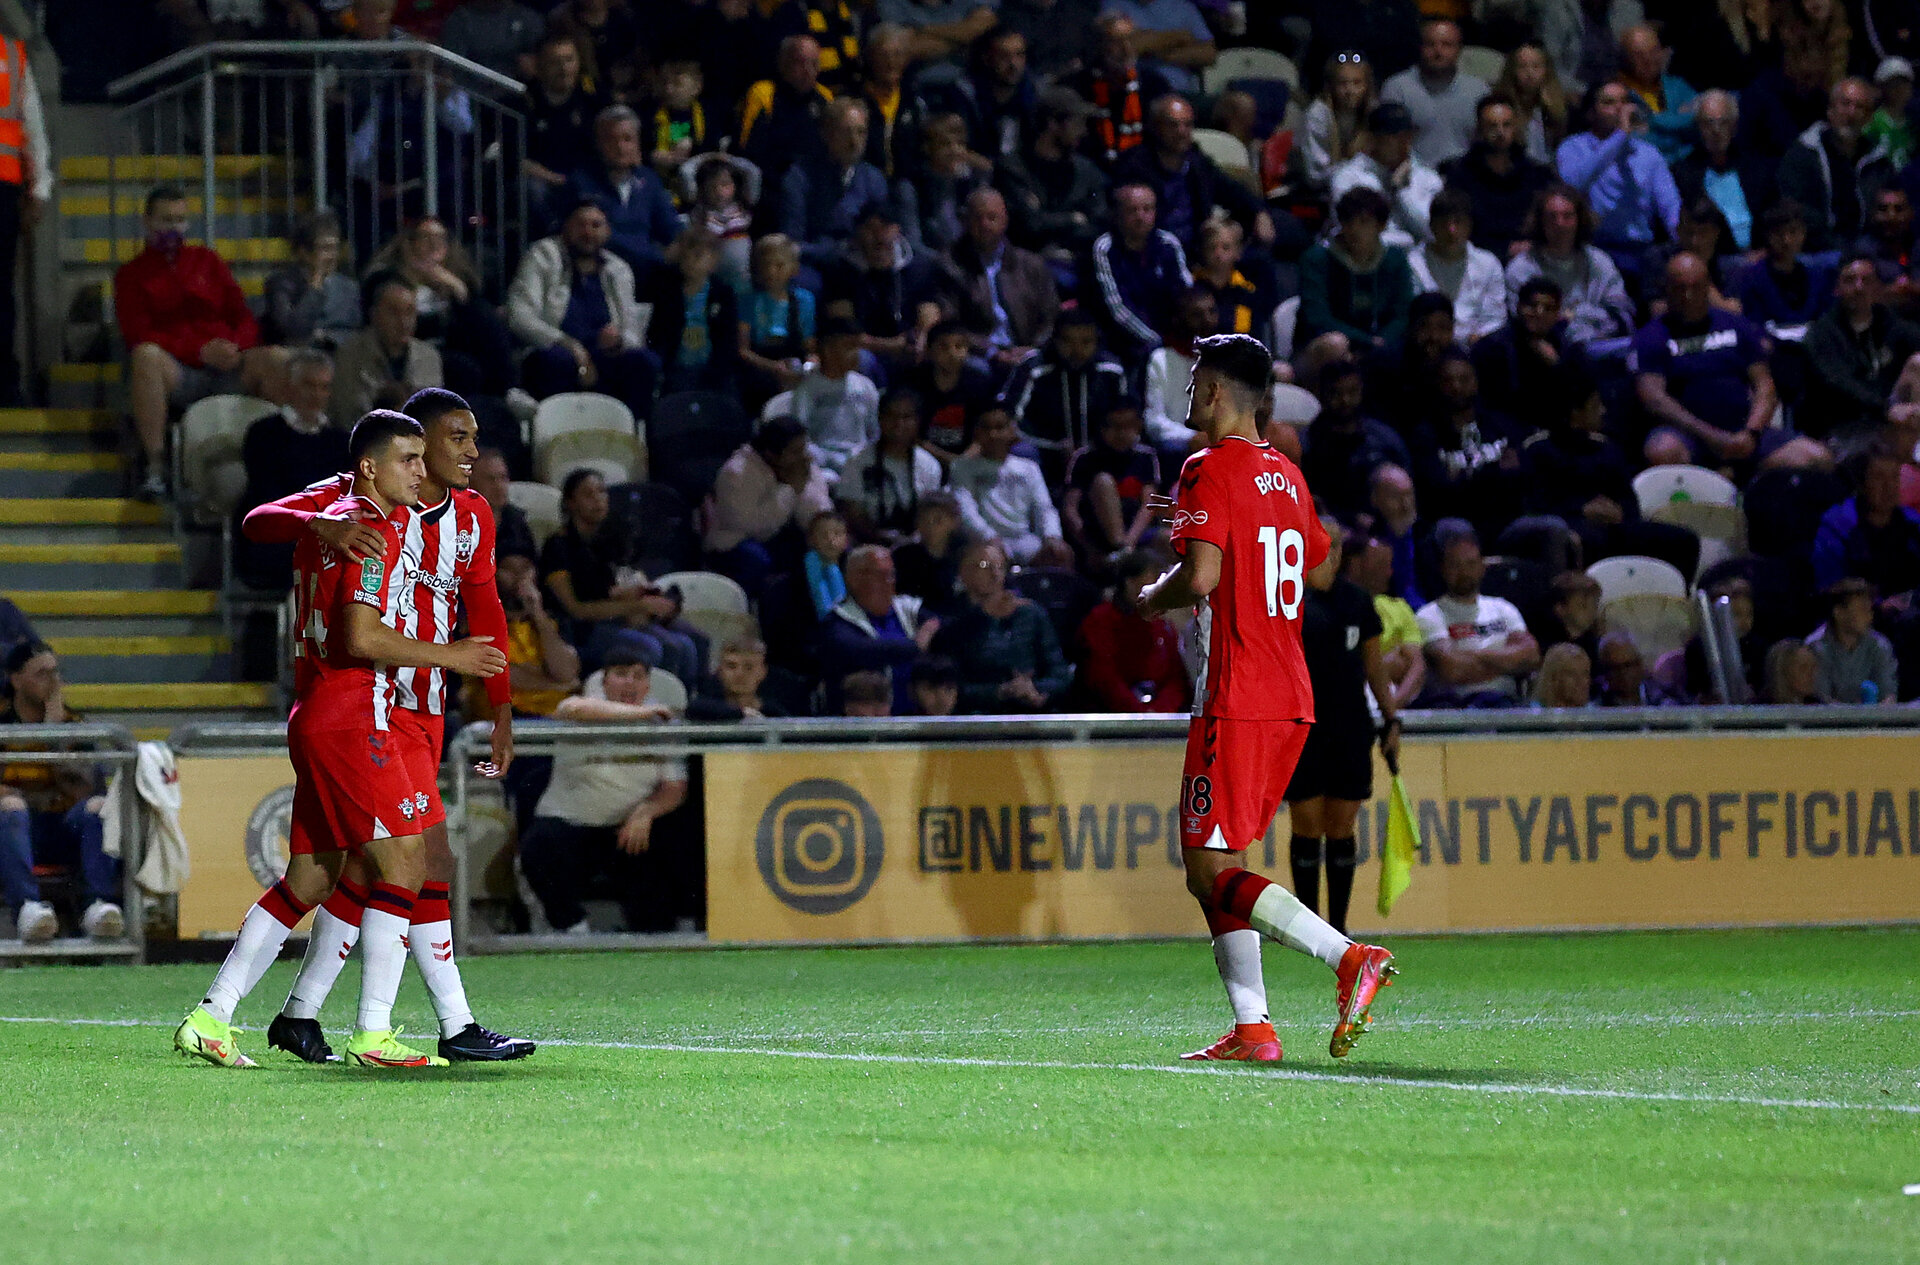 NEWPORT, WALES - AUGUST 25: Mohamed Elyounoussi of Southampton celebrates his teams fifth goal during the Carabao Cup second round match between Newport County and Southampton FC, at Rodney Parade on August 25, 2021 in Newport, Wales. (Photo by Matt Watson/Southampton FC via Getty Images)